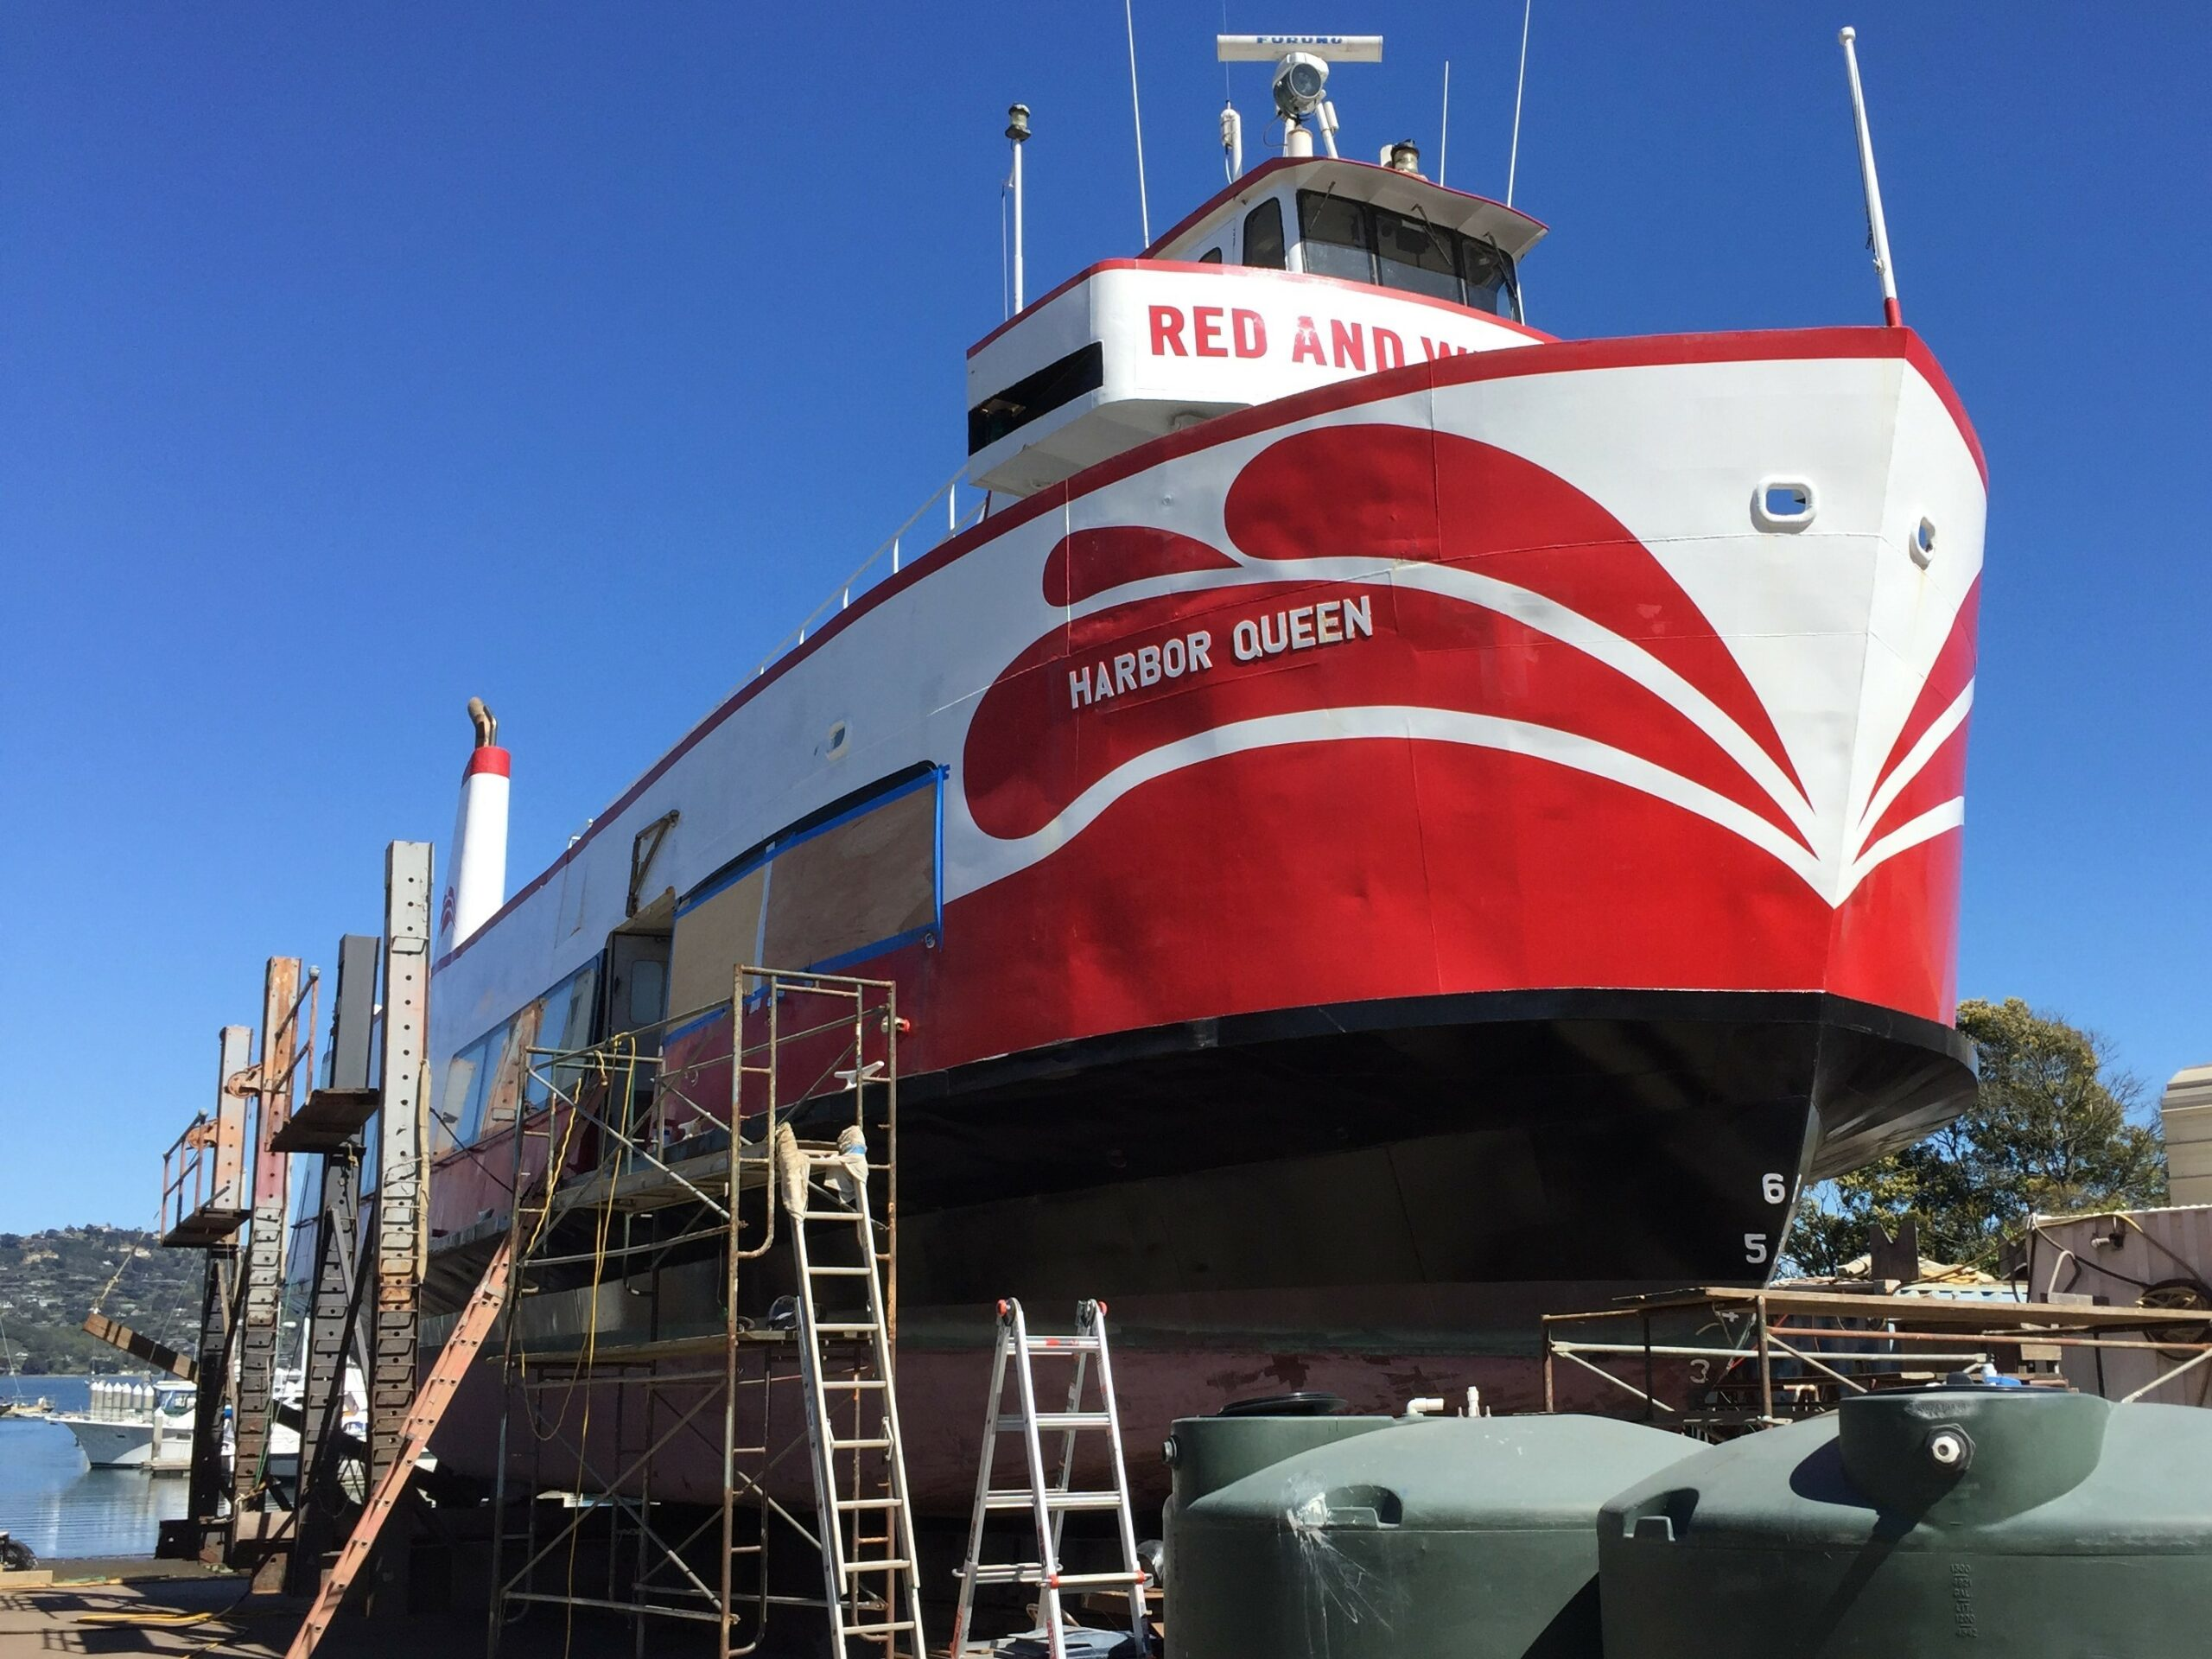 Marinship, Red and White Fleet, Marin County